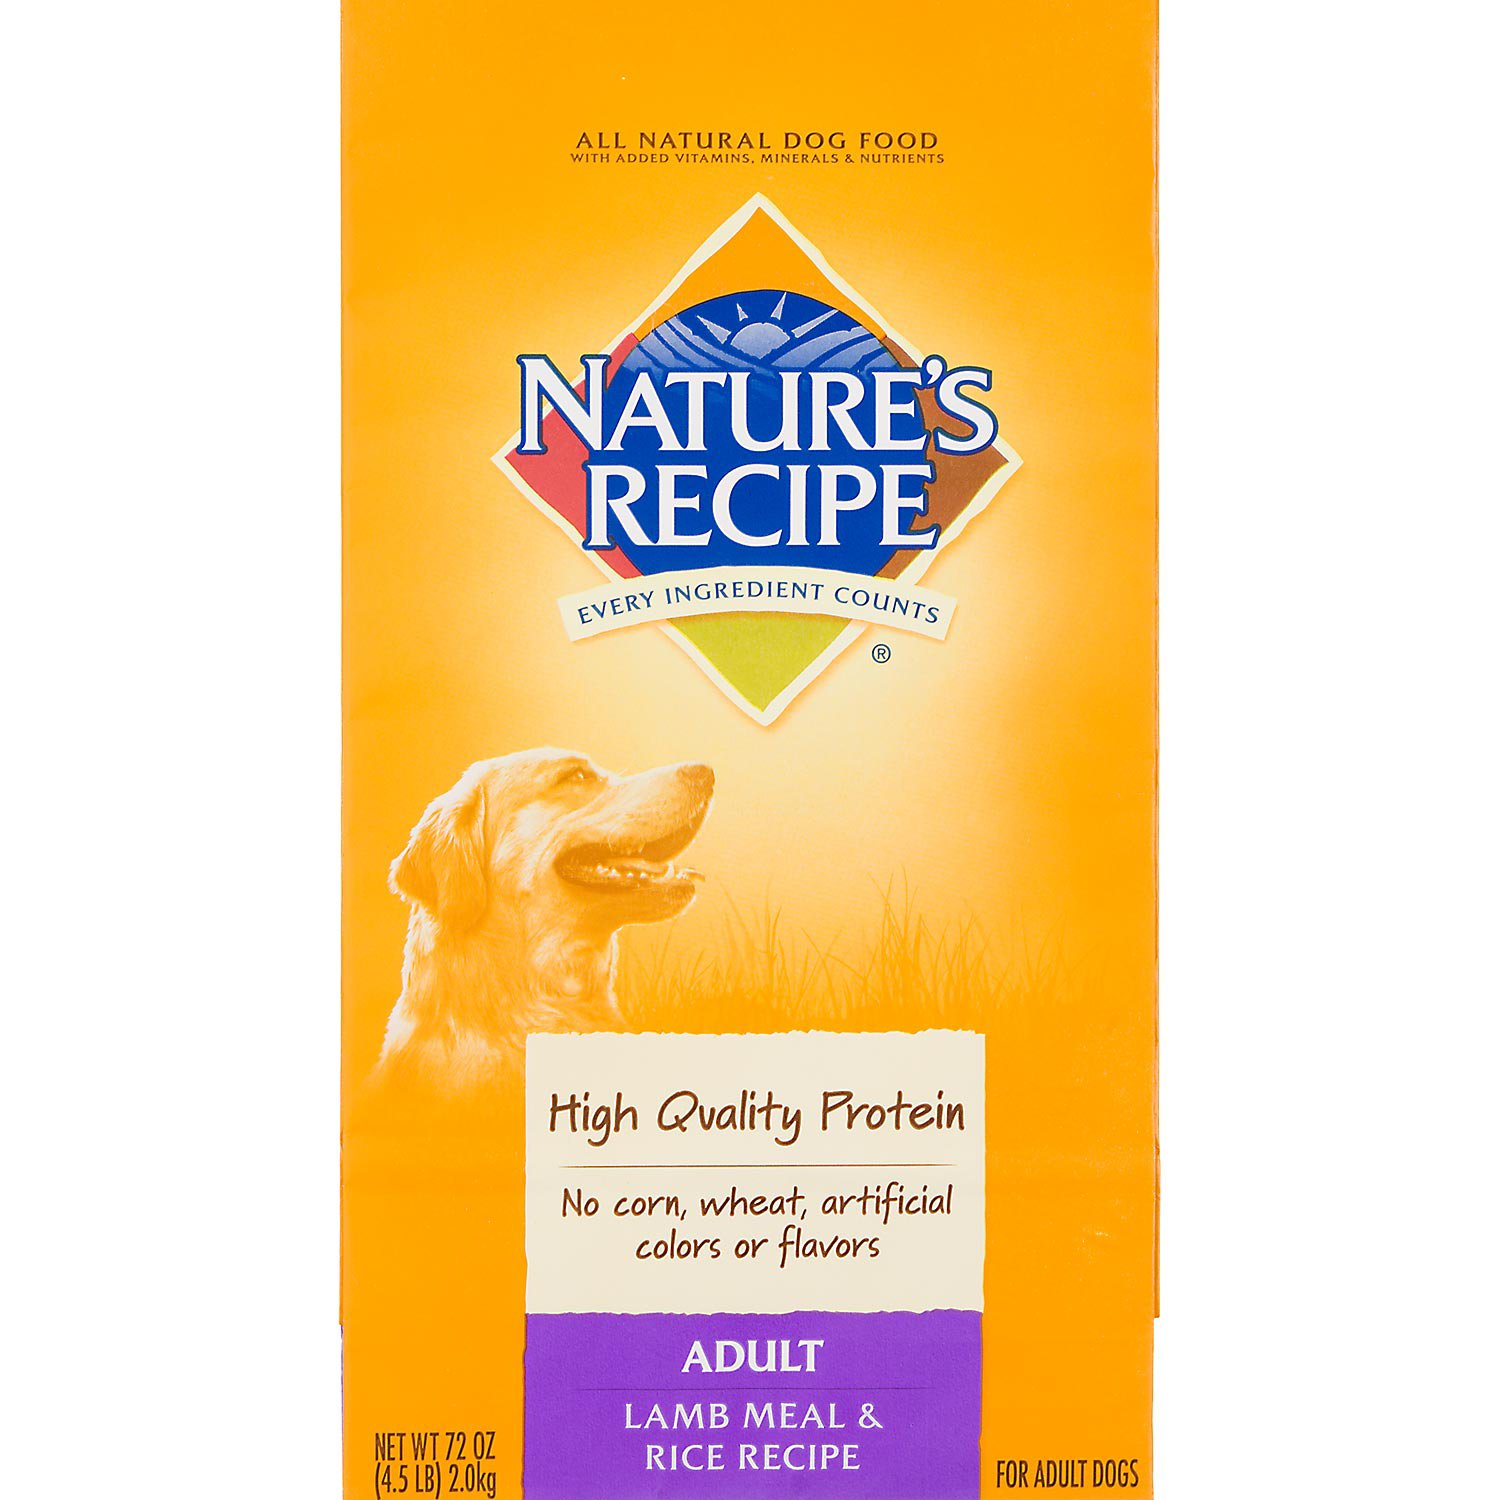 Nature's Recipe Lamb Meal & Rice Adult Dog Food